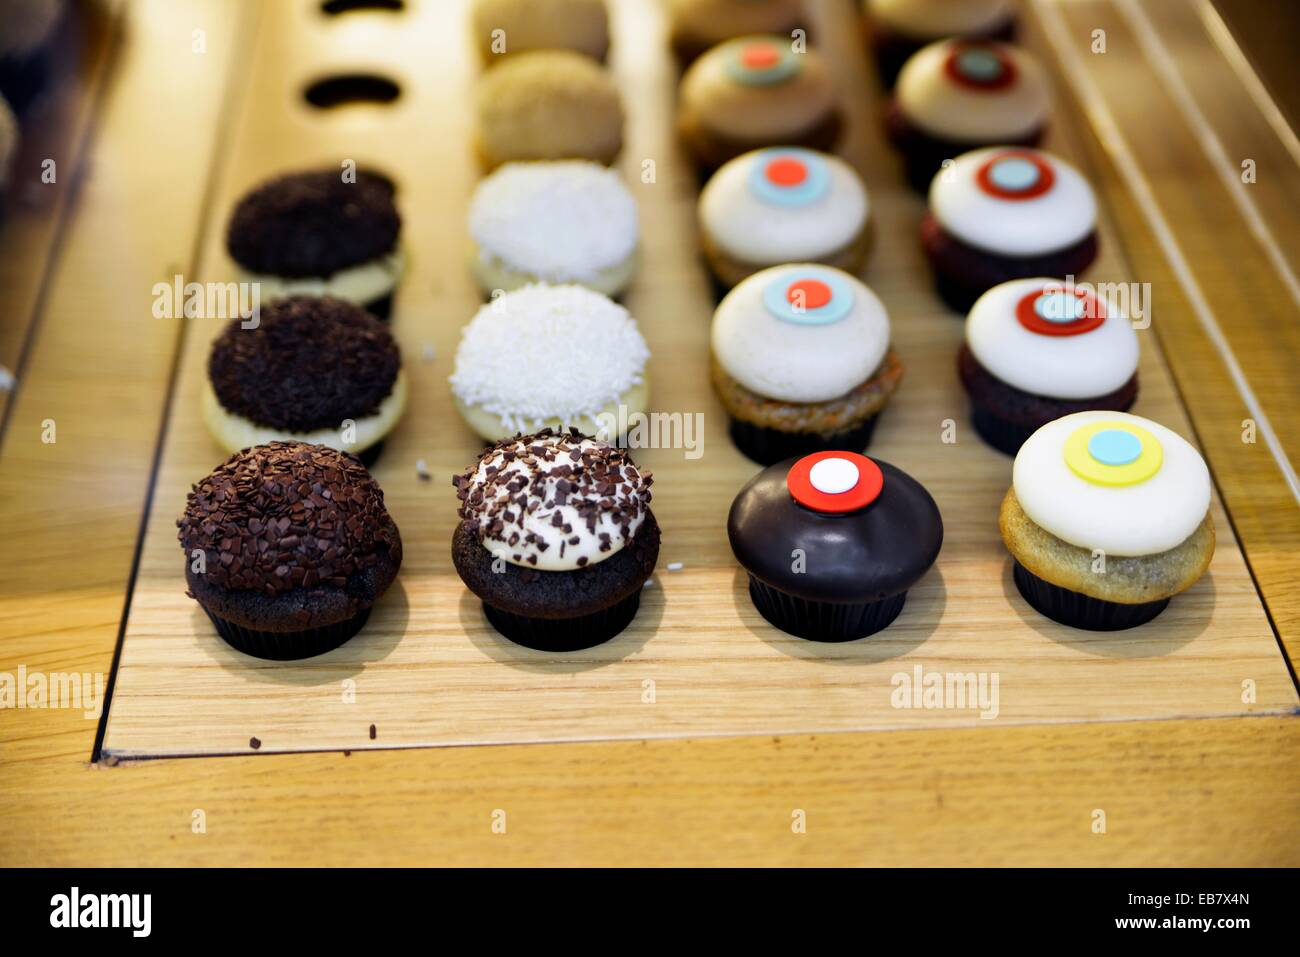 Mini-Cupcakes Displayed in a Glass Enclosed Case. - Stock Image